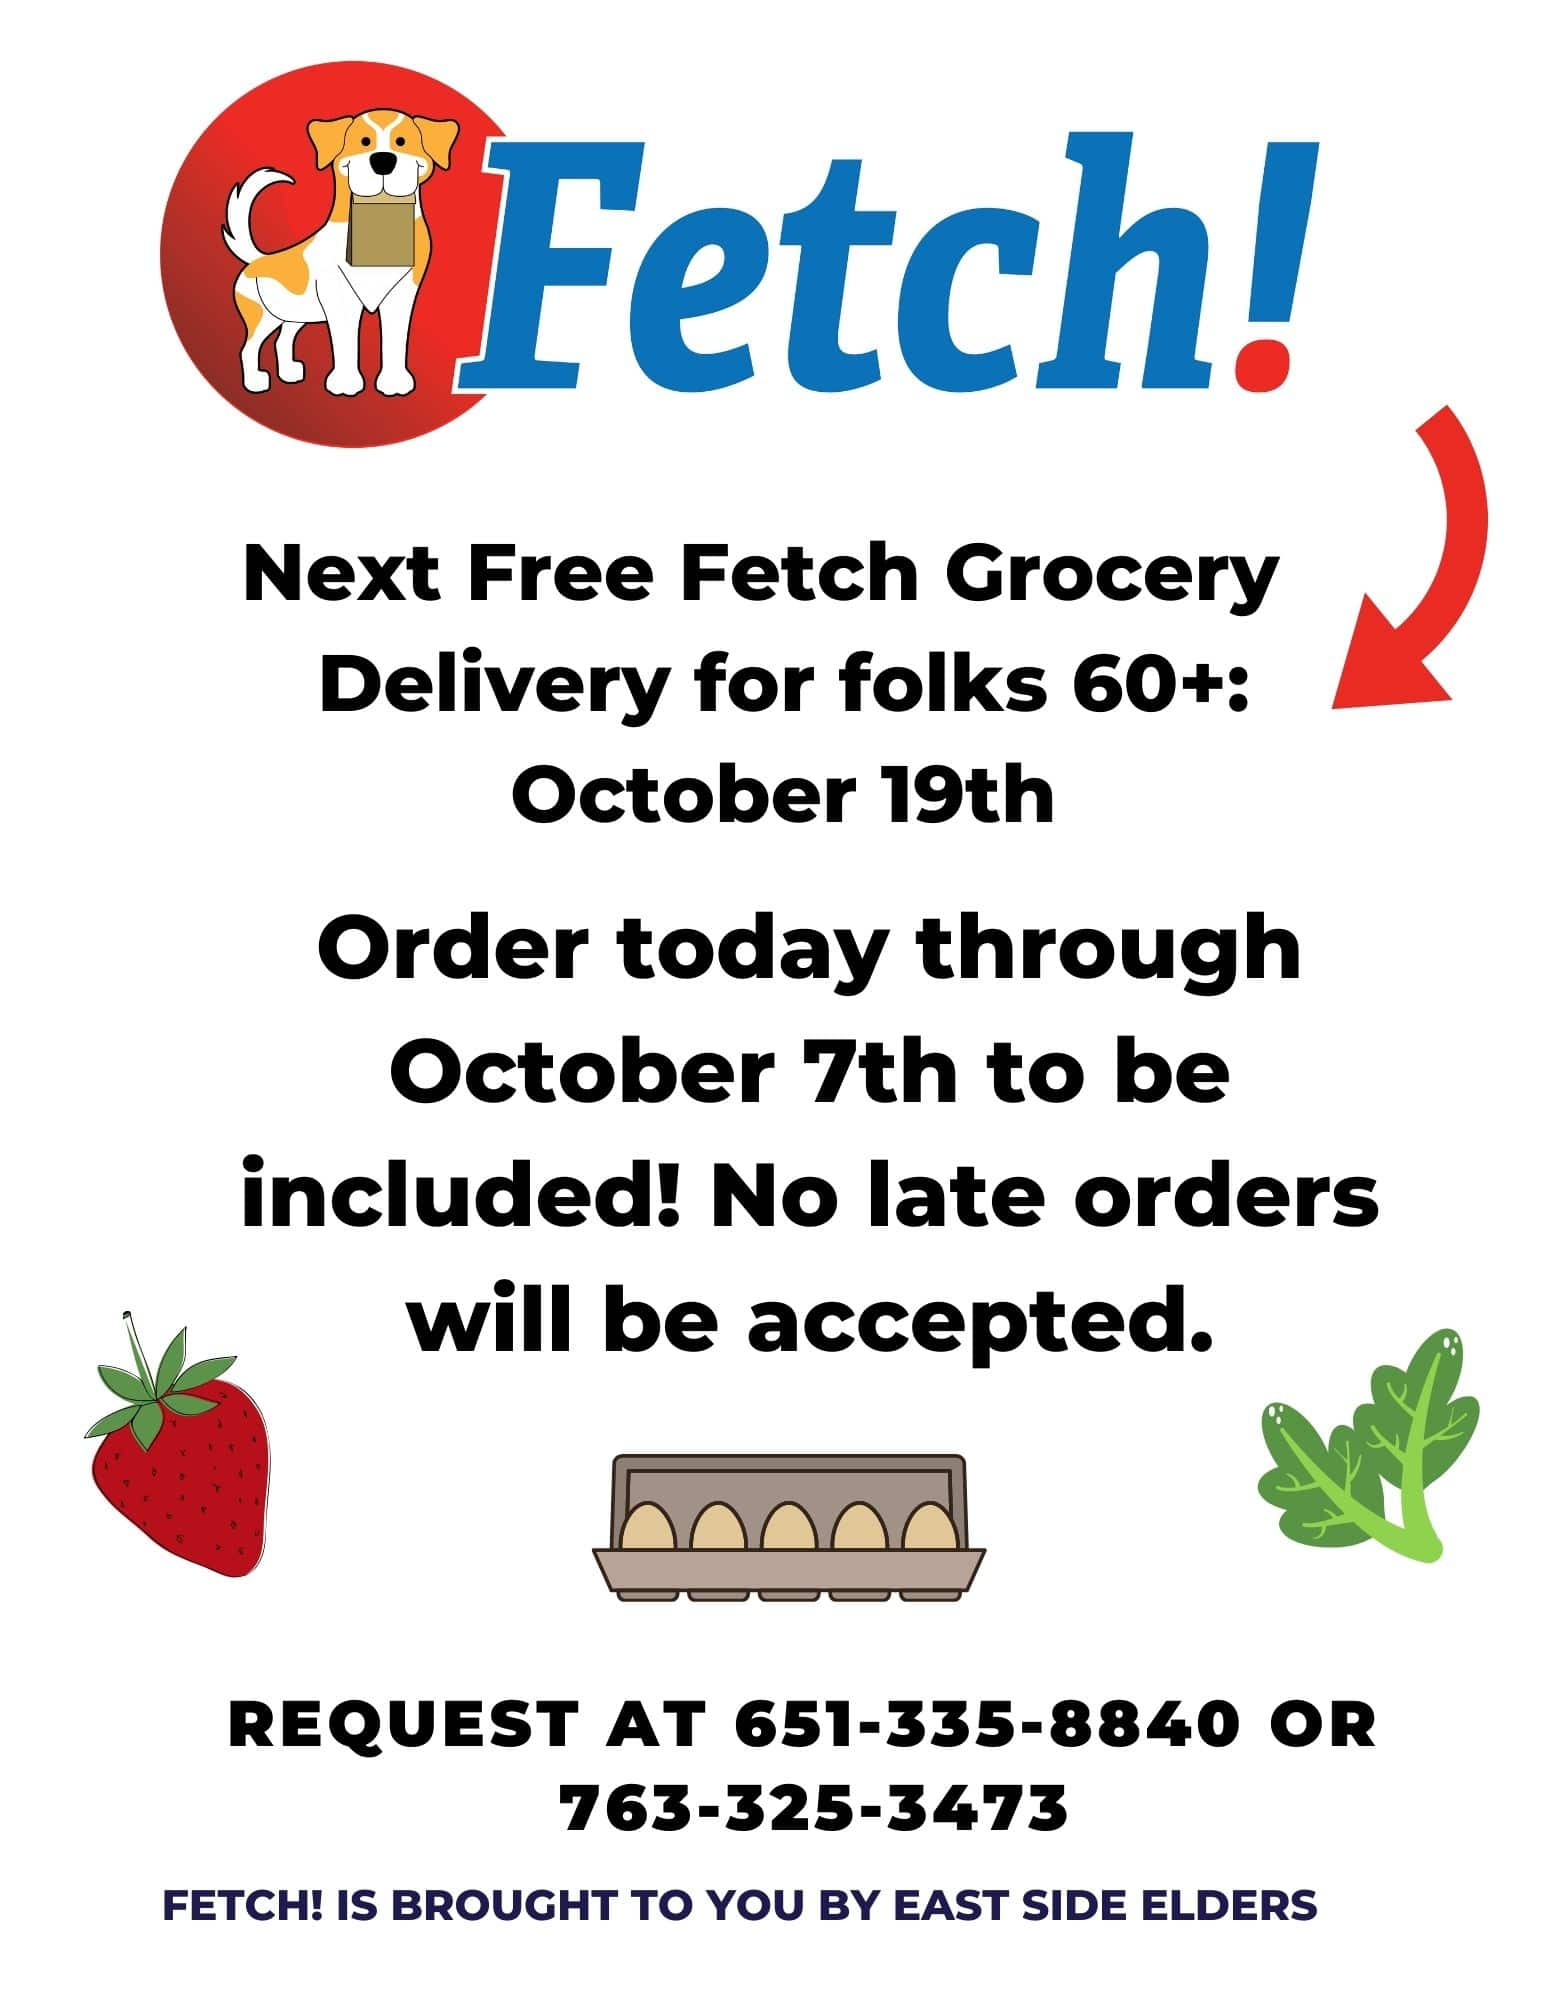 Flyer for the October Fetch distribution features illustrative images of produce and the fetch logo - a yellow and white dog holding a paper bag. Details in the post.